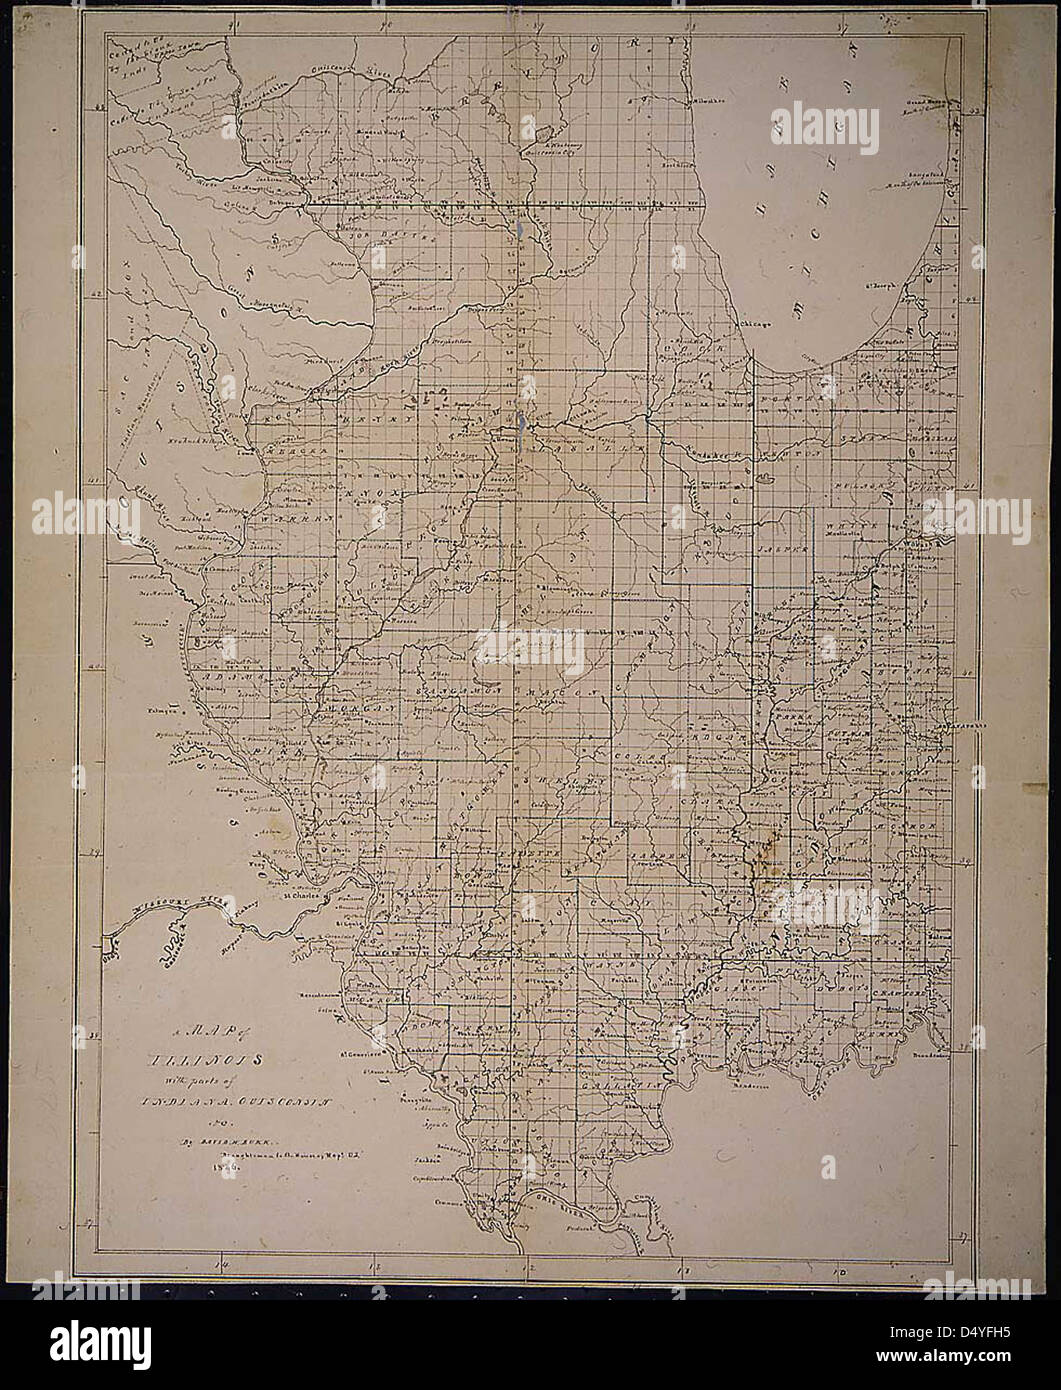 A map of Illinois, 1836 - Stock Image